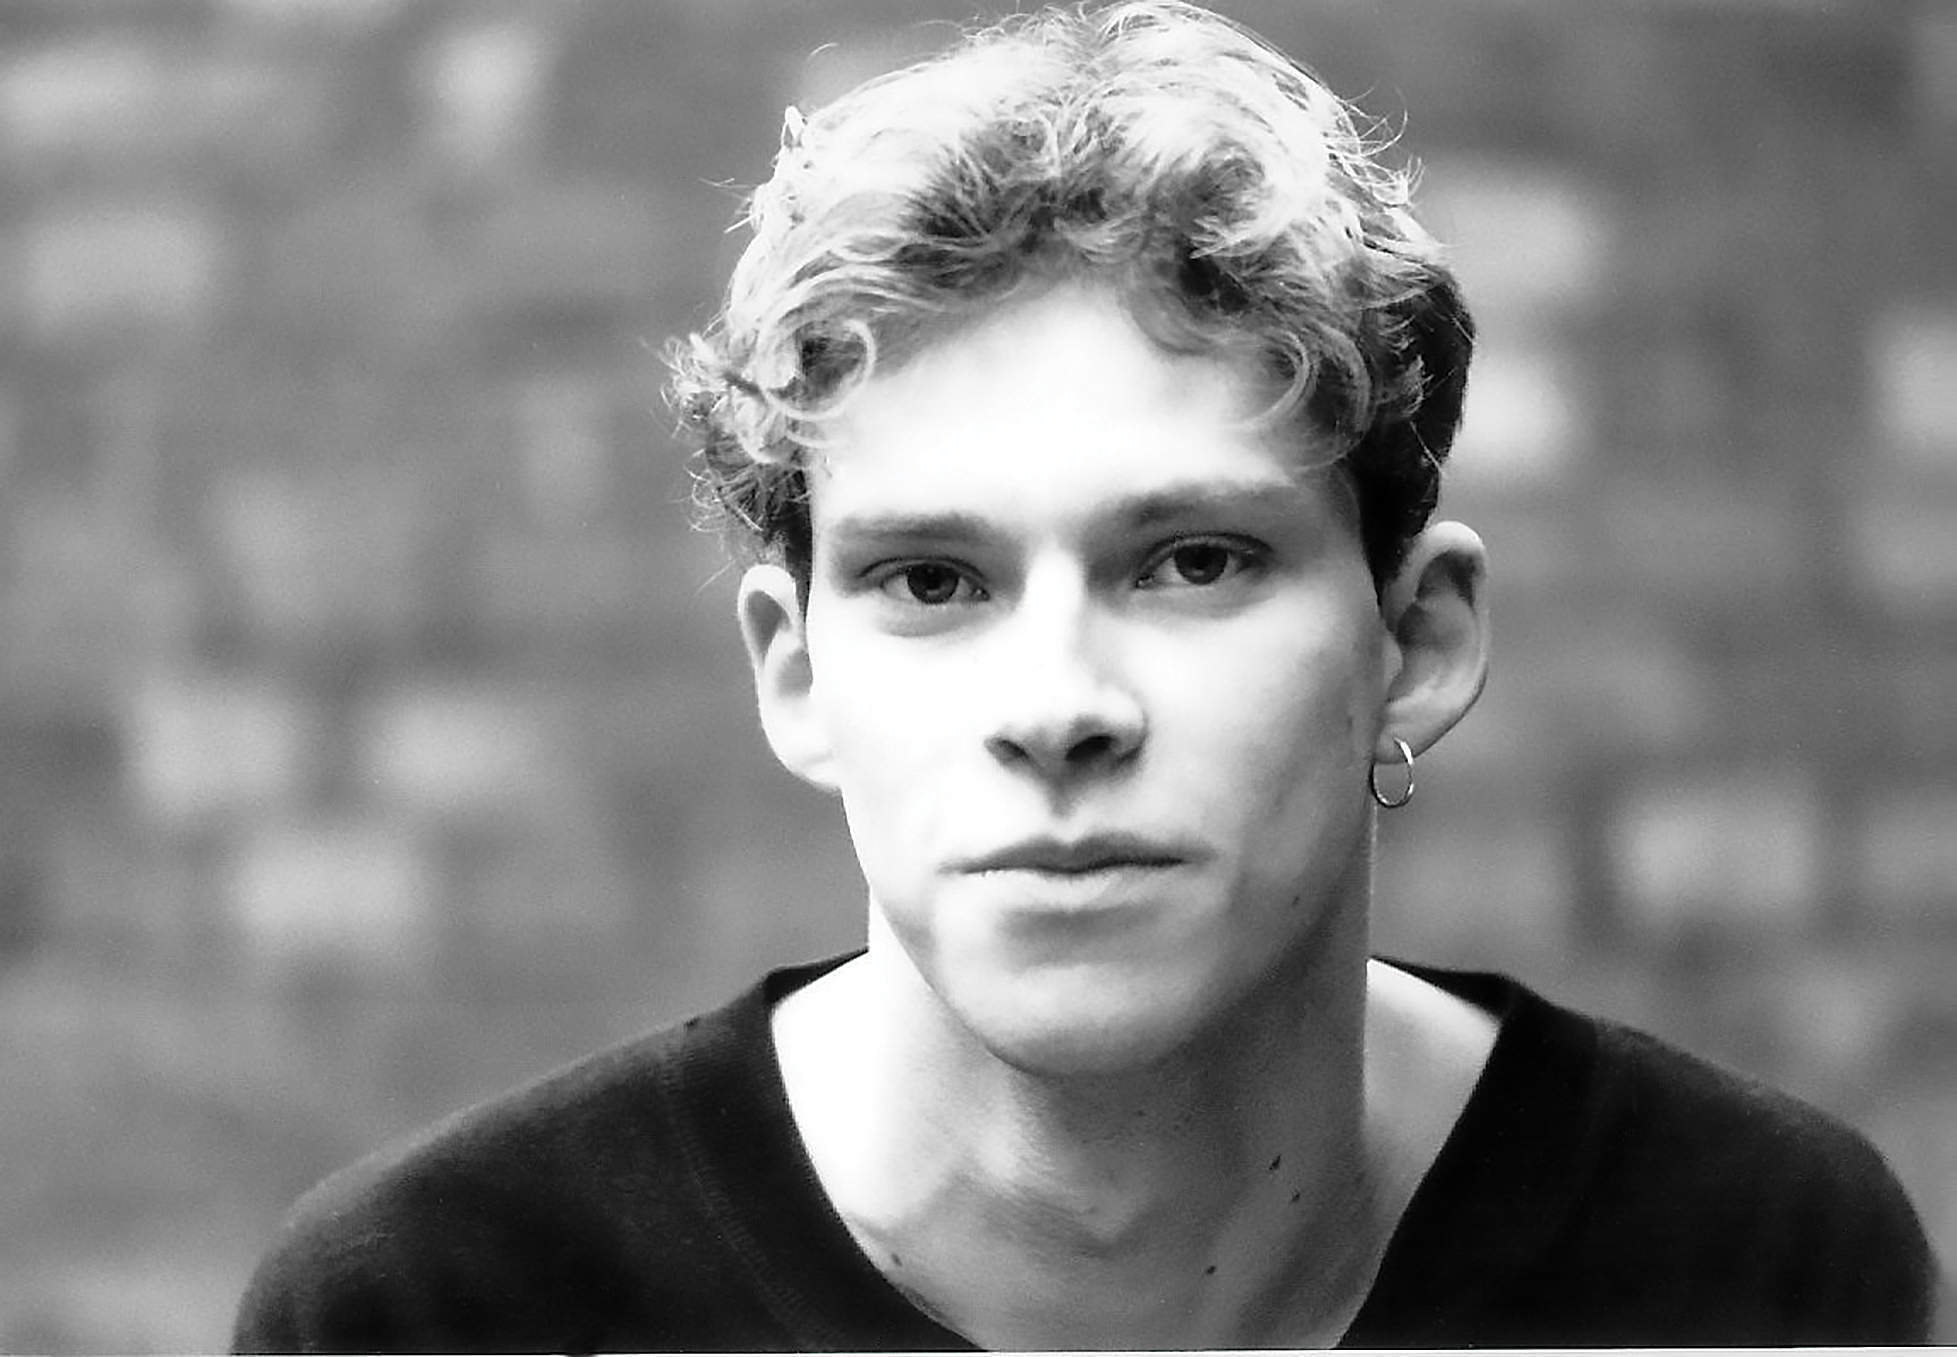 Robert Webb's How Not To Be a Boy: a bittersweet picture of men dealing with loss